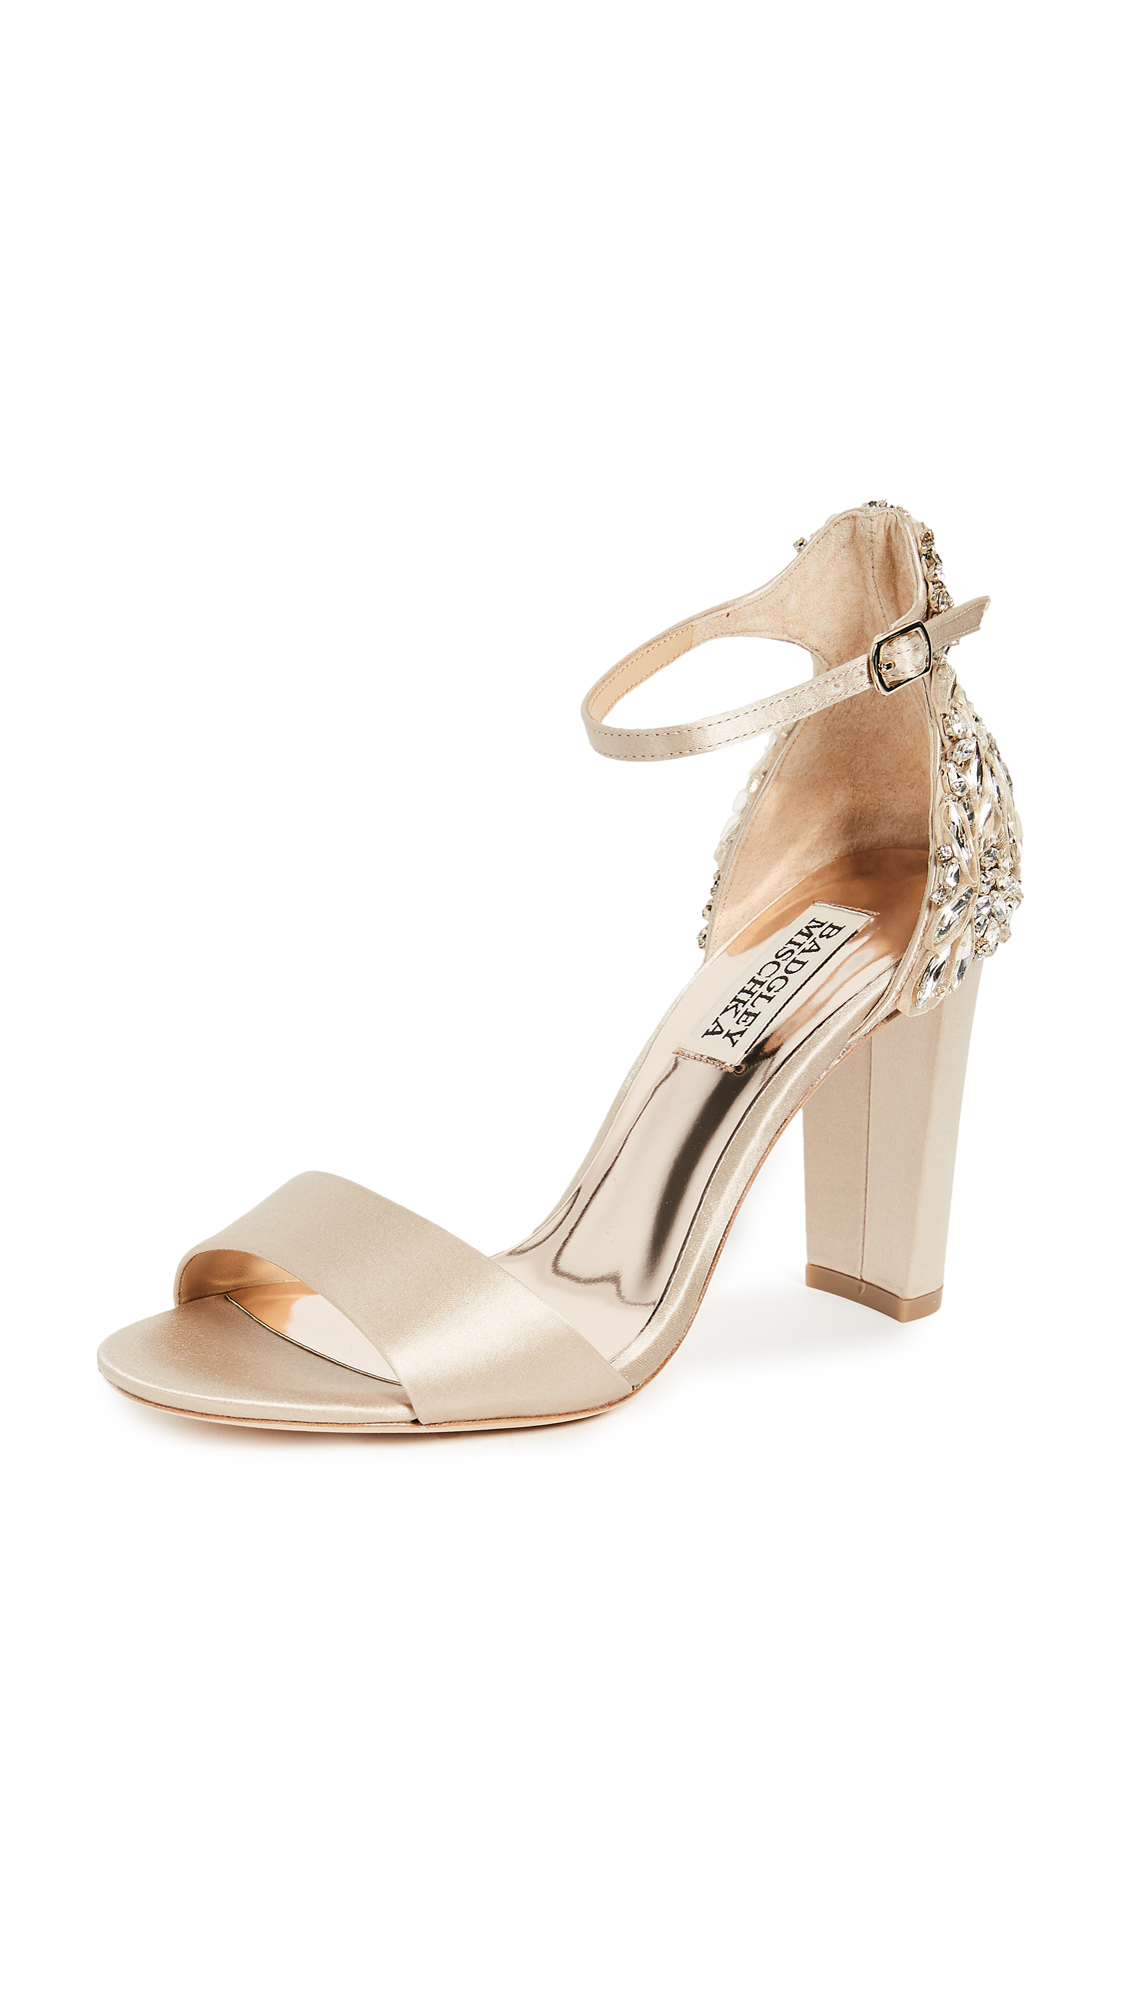 Badgley Mischka Seina Ankle Strap Sandals - Nude